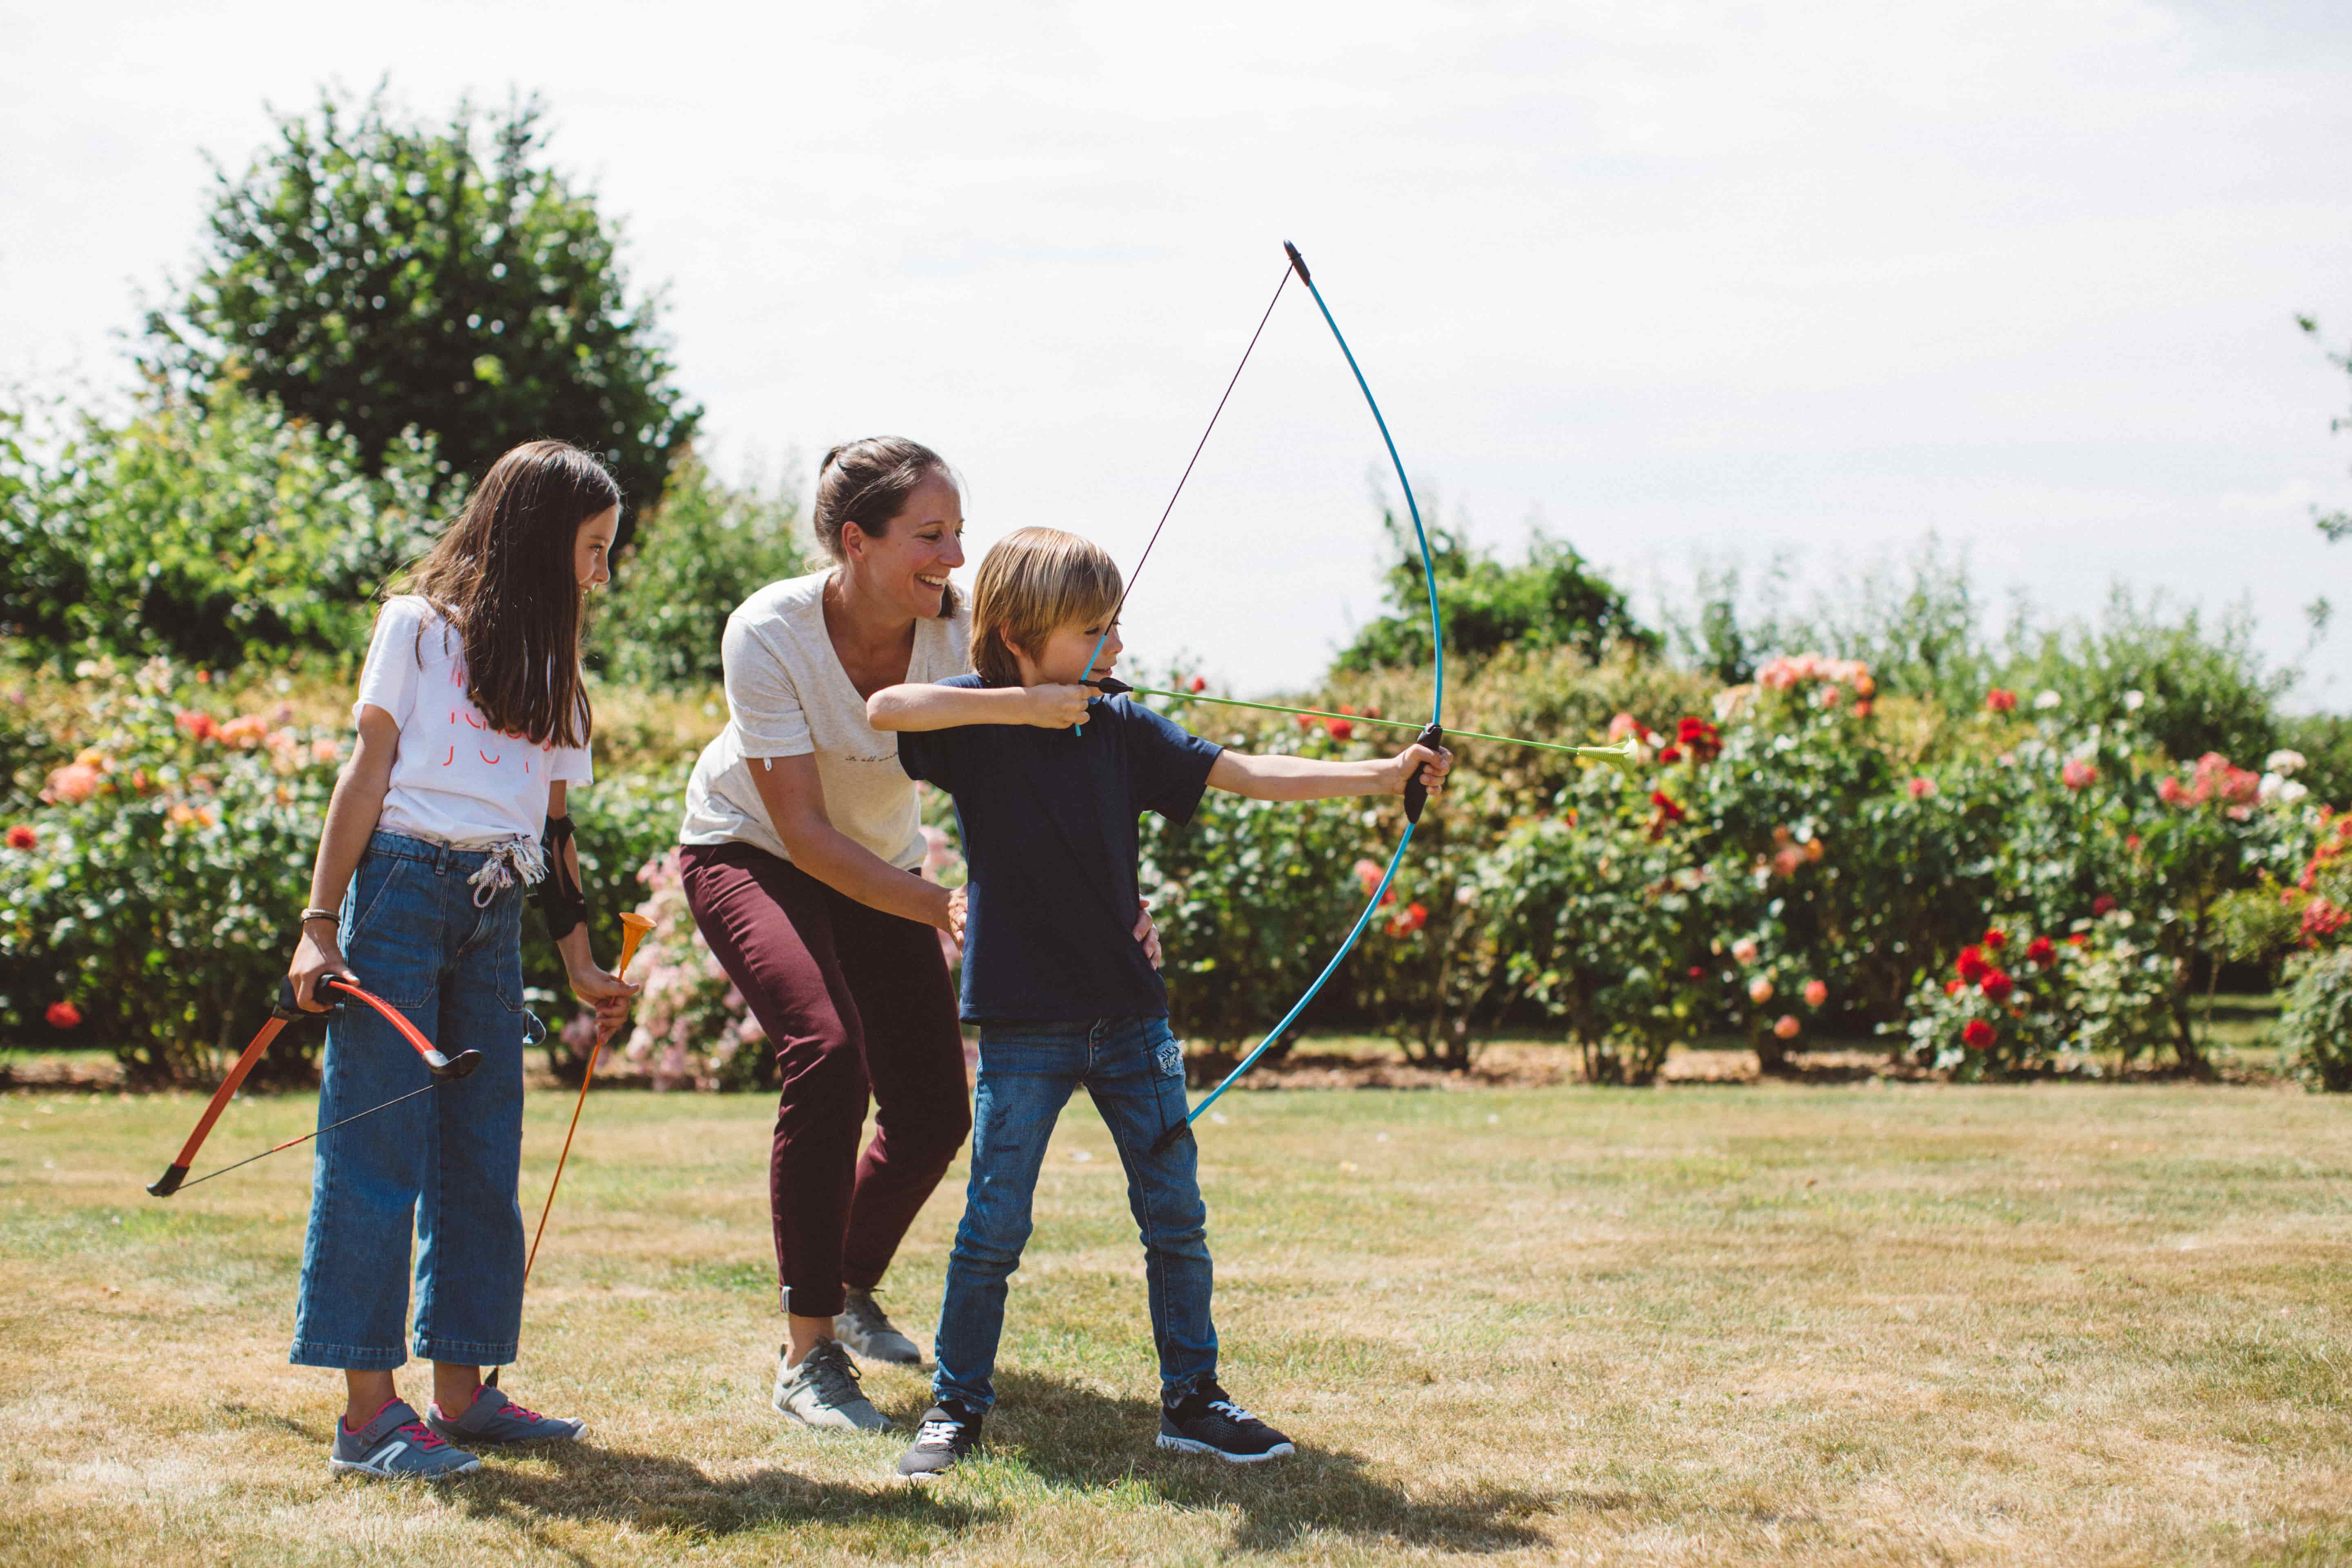 Archery: At what age can you start